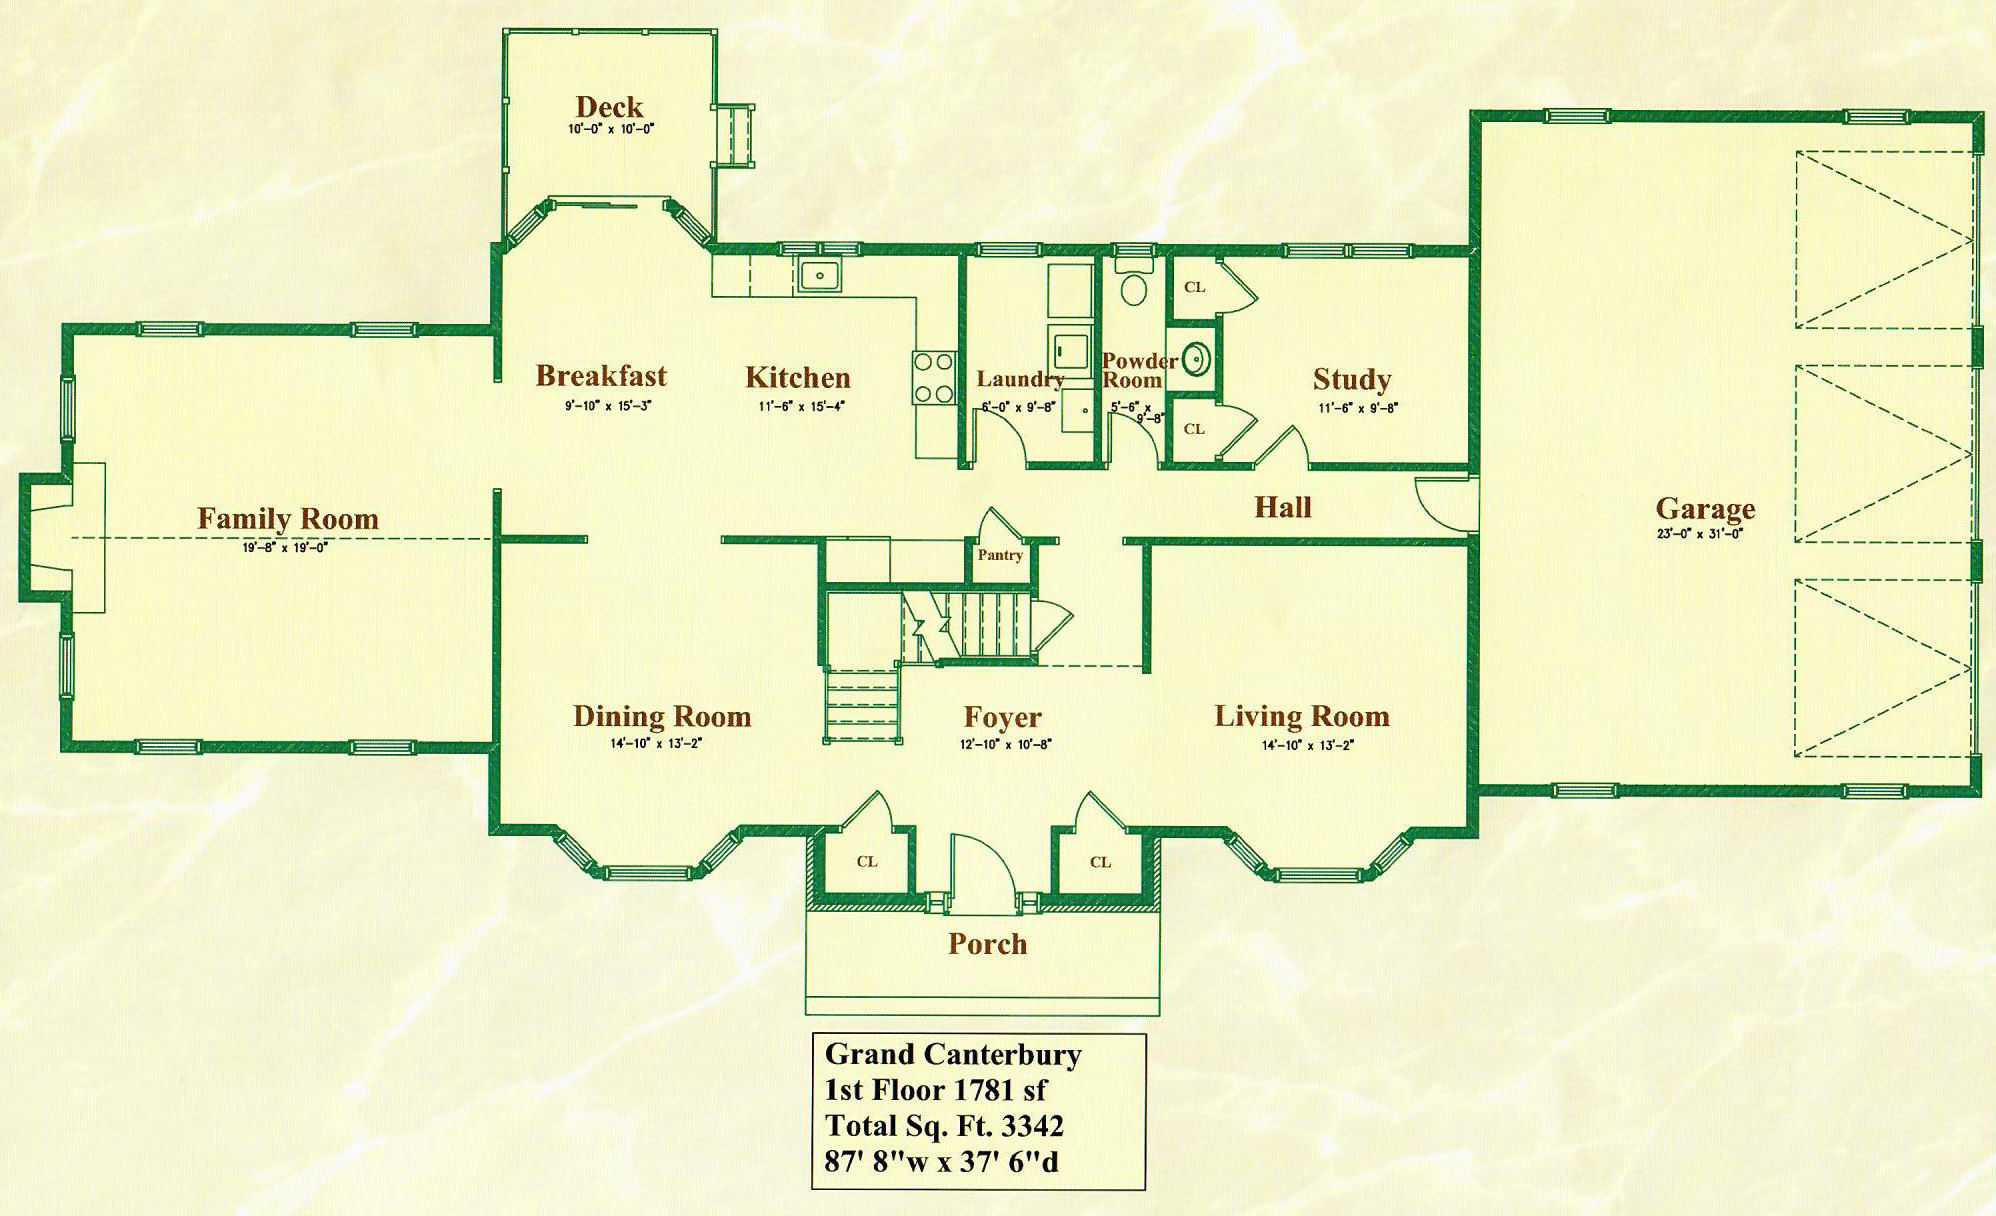 Heritage Hills - Grand Canterbury - First Floor